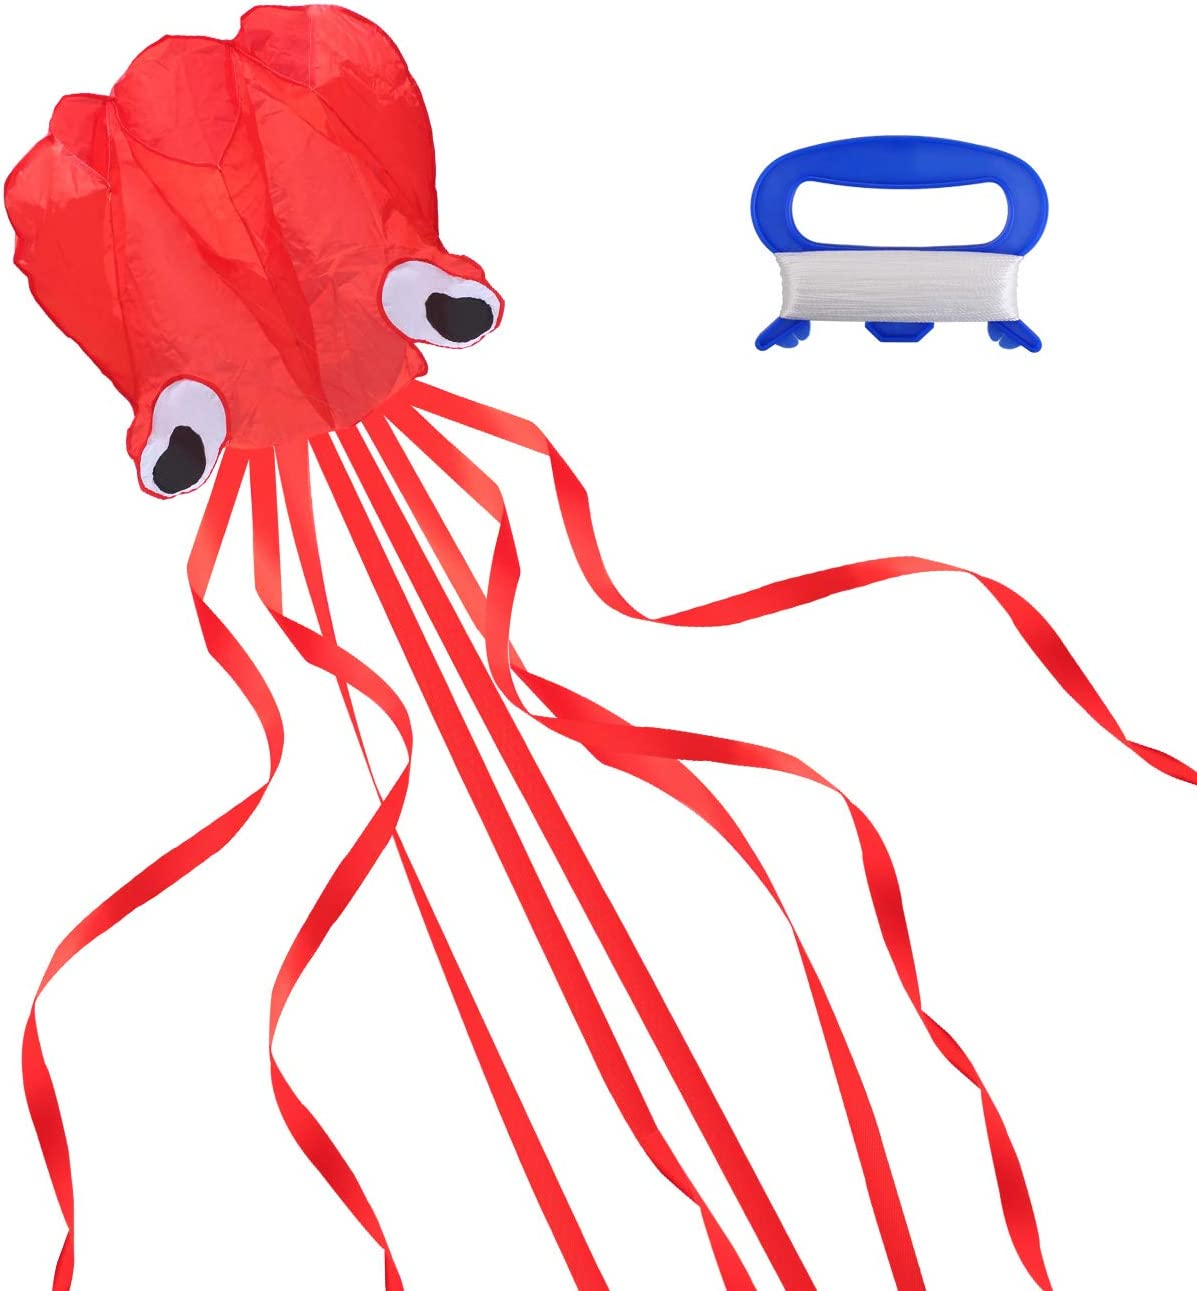 GWHOLE 3D Octopus Kite with Long Tail for Kids Outdoor Game Acti